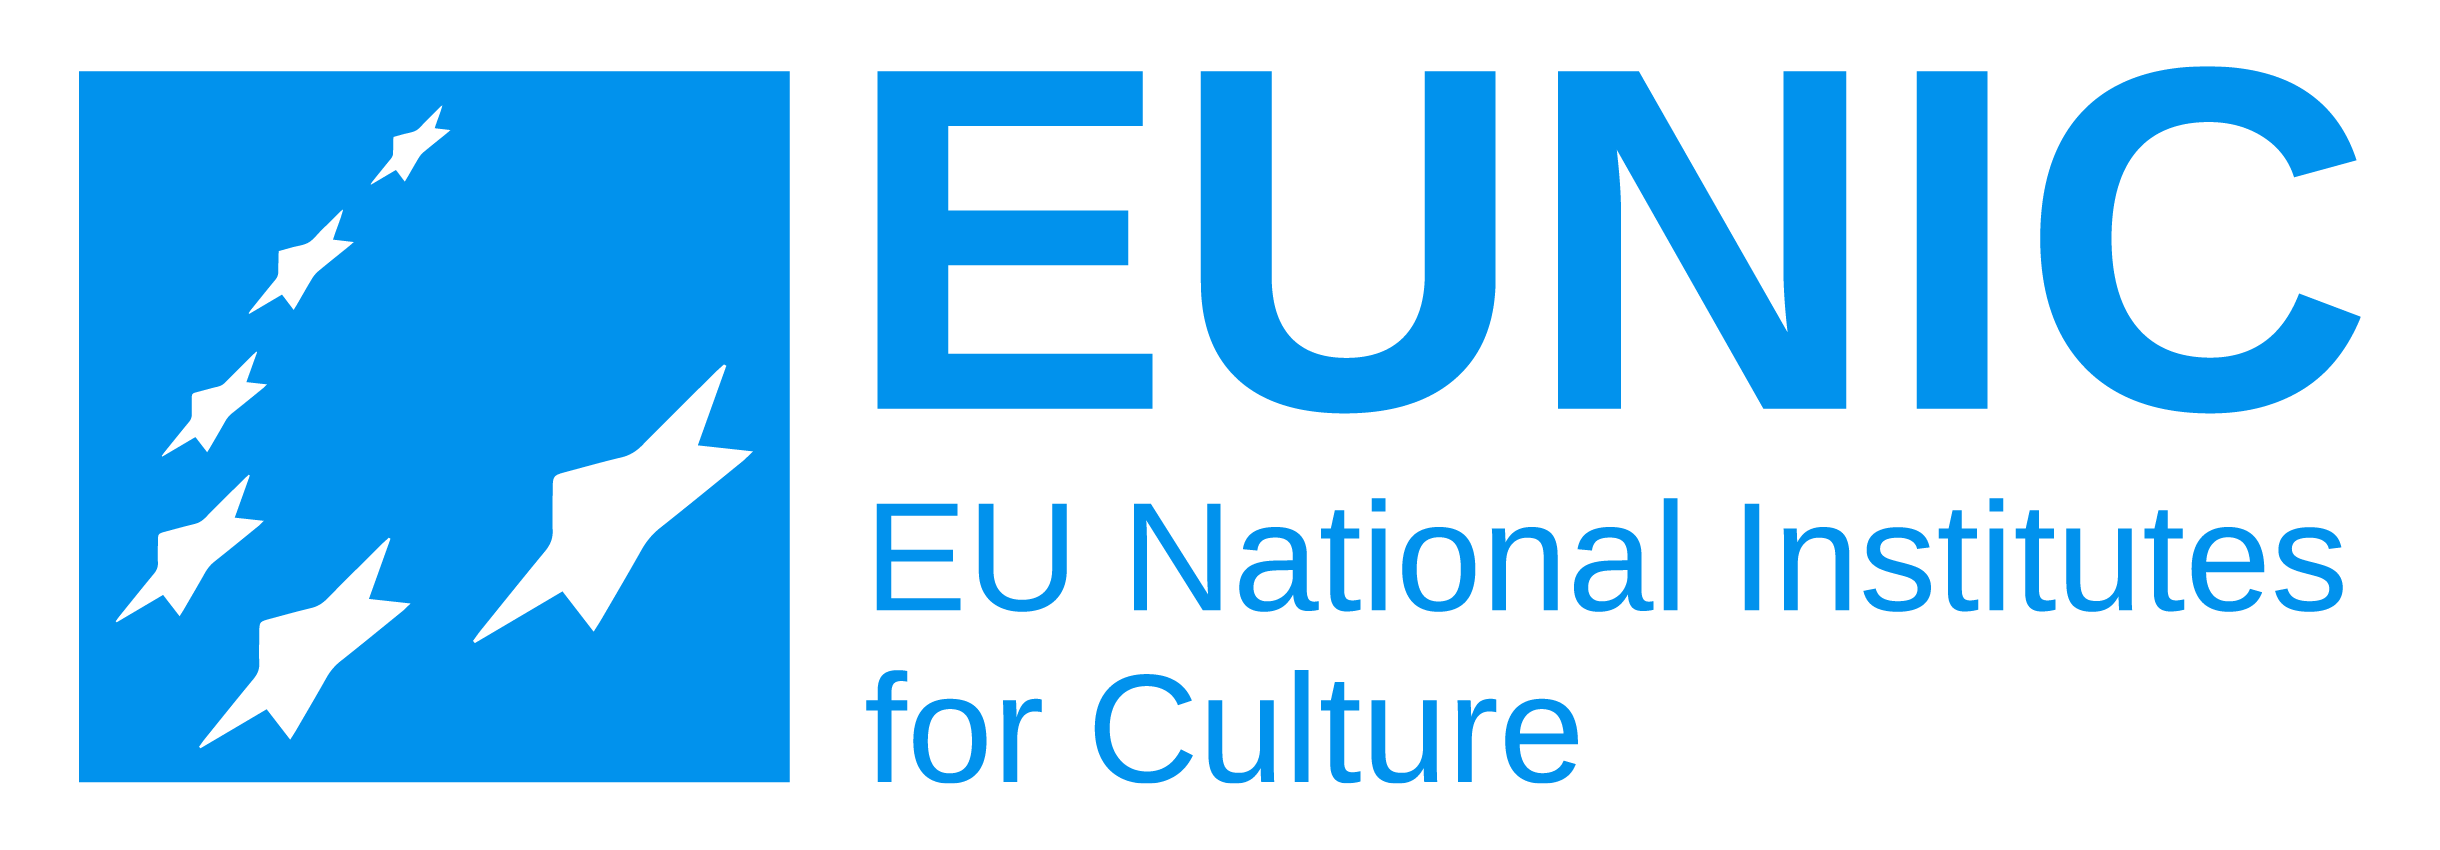 European Union National Institutes for Culture